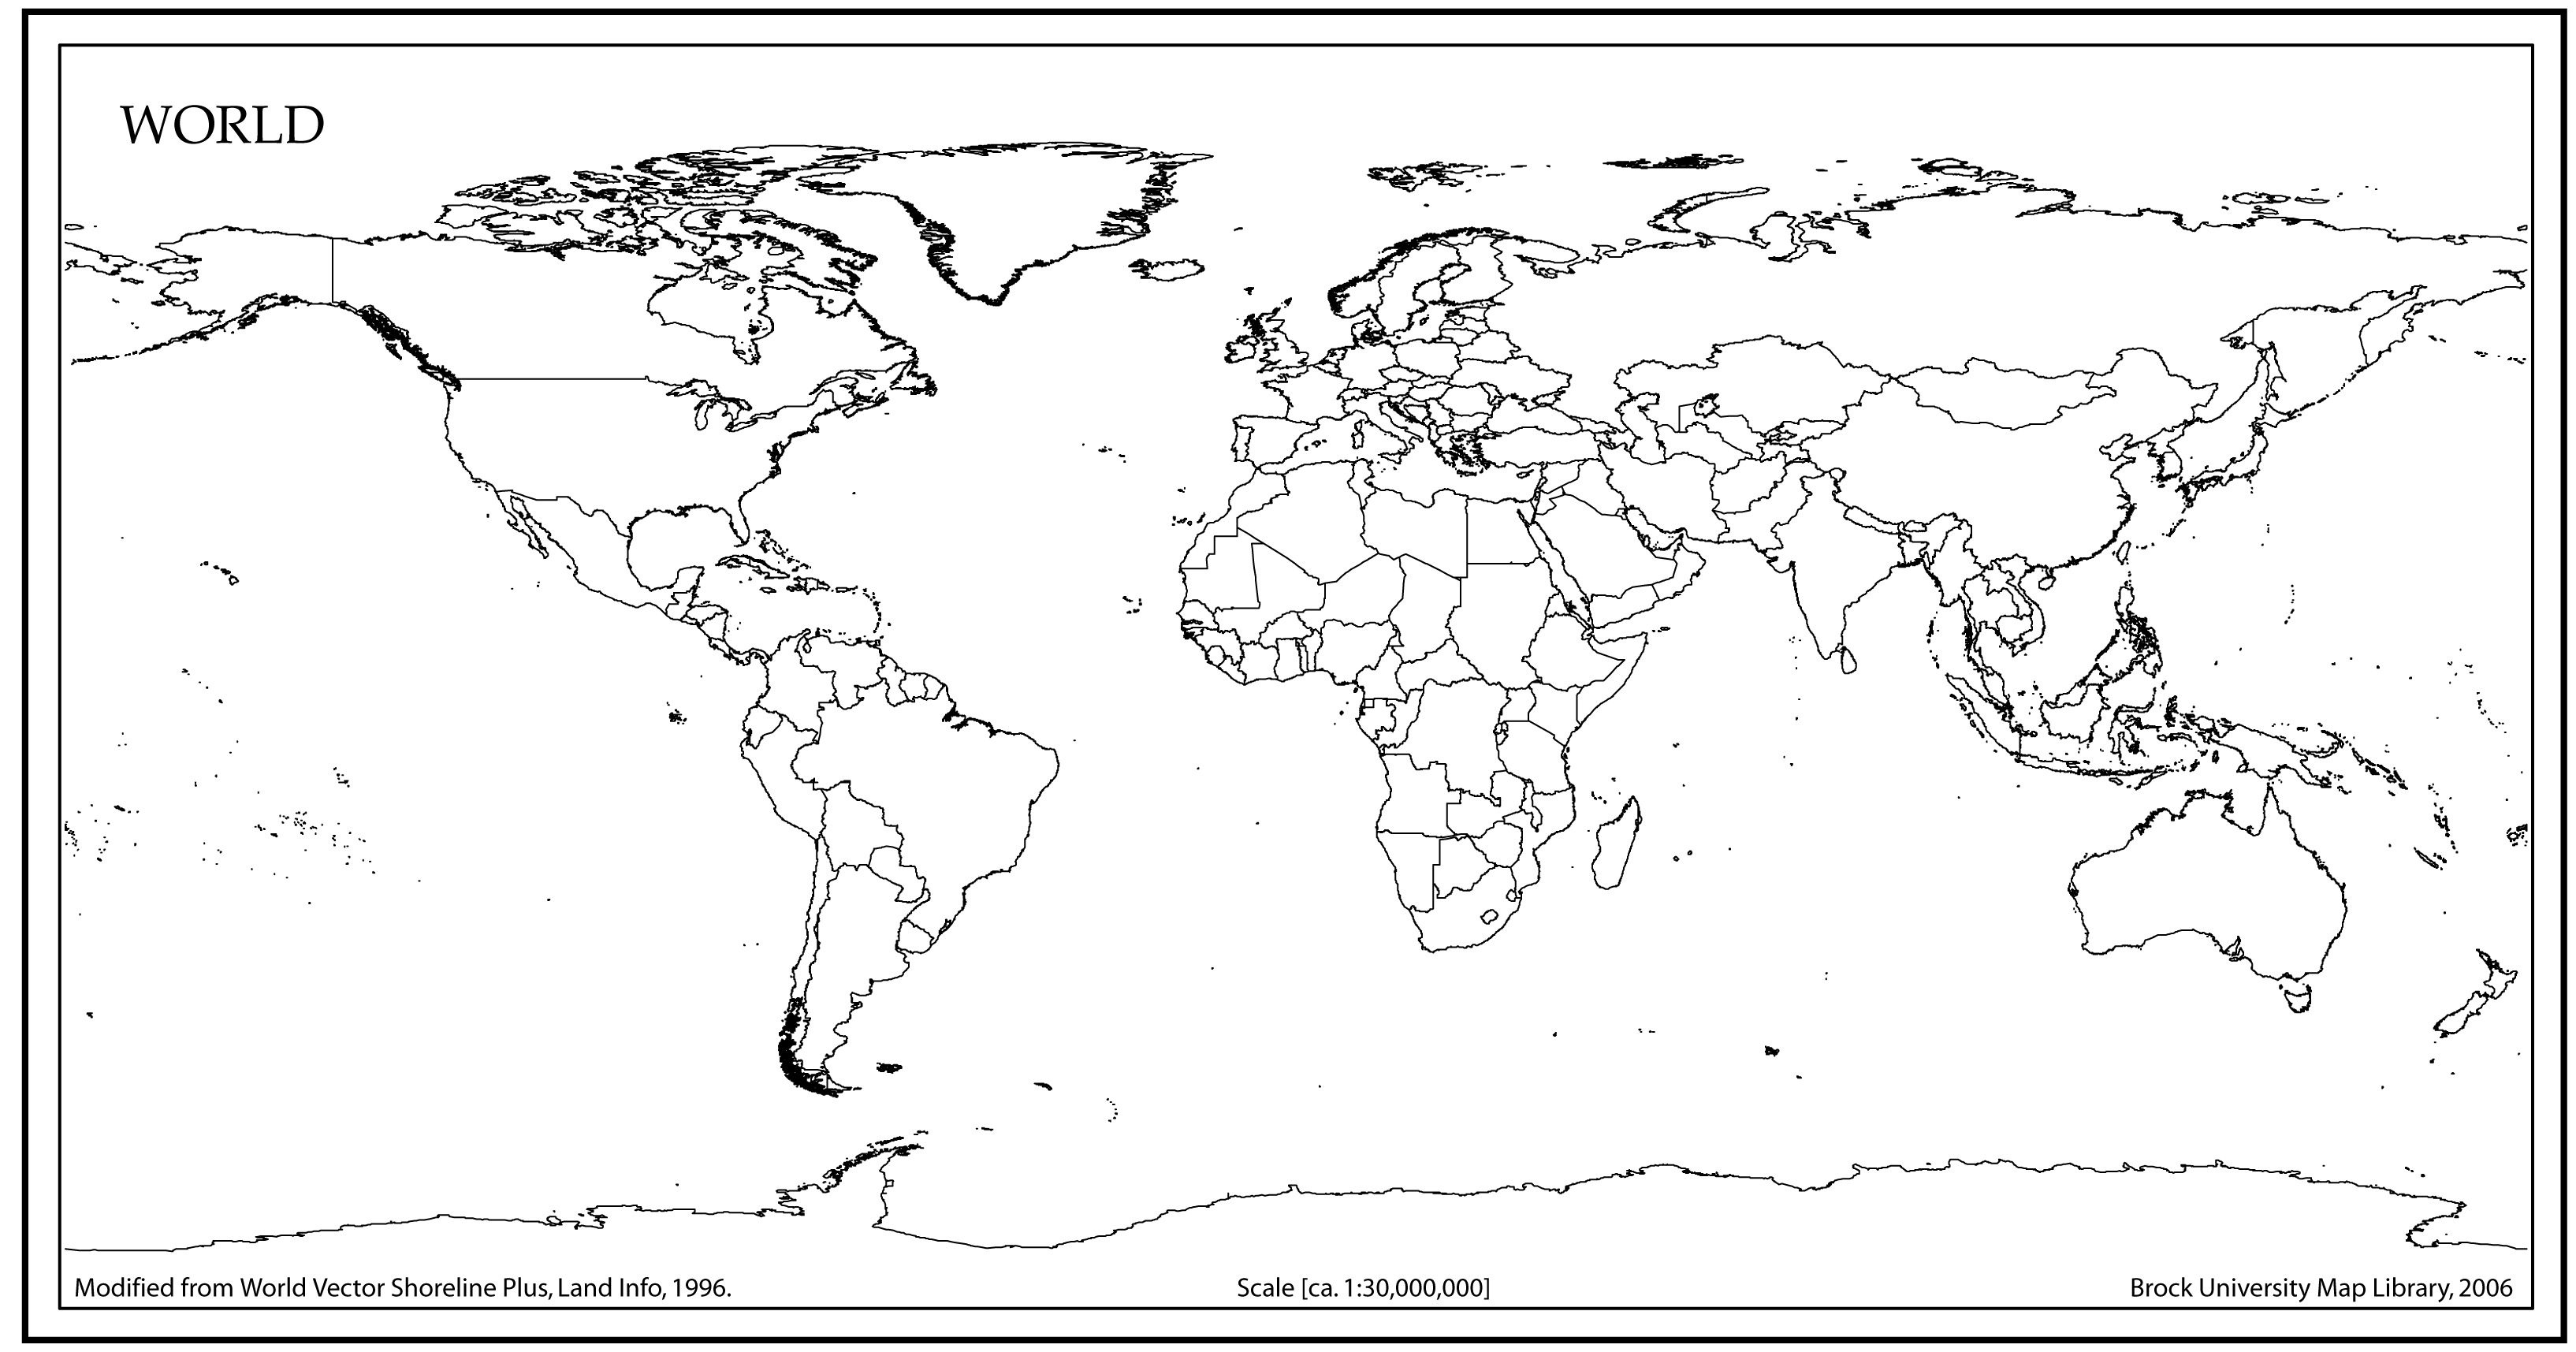 World Map Outline With Countries | World Map | World Map Outline - Free Printable Blank World Map Download